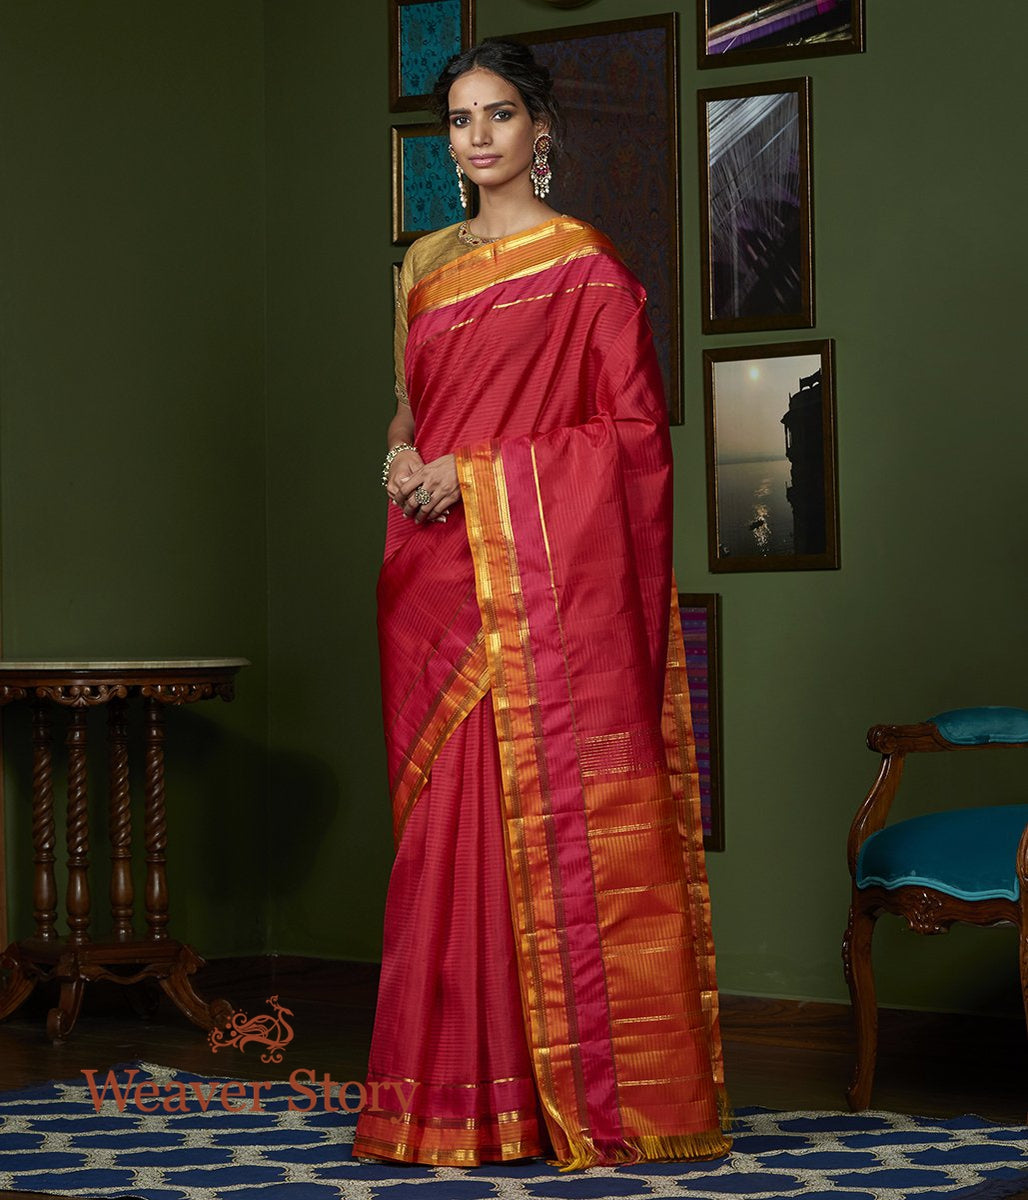 Handwoven Red and Pink Dual Tone Kanjivaram Silk Saree